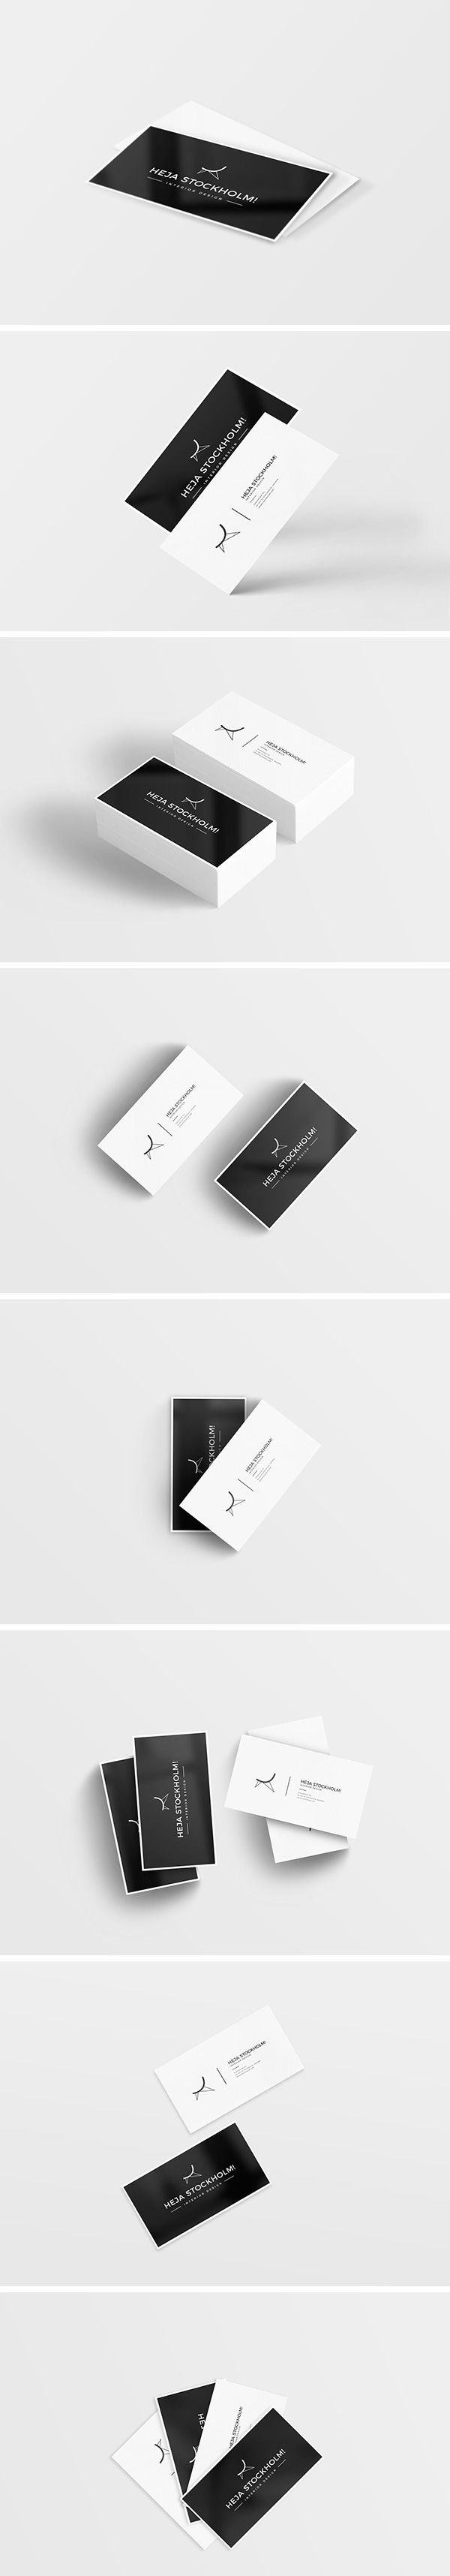 115+ High-Quality Free Business Card Mock-ups PSD | Free business ...